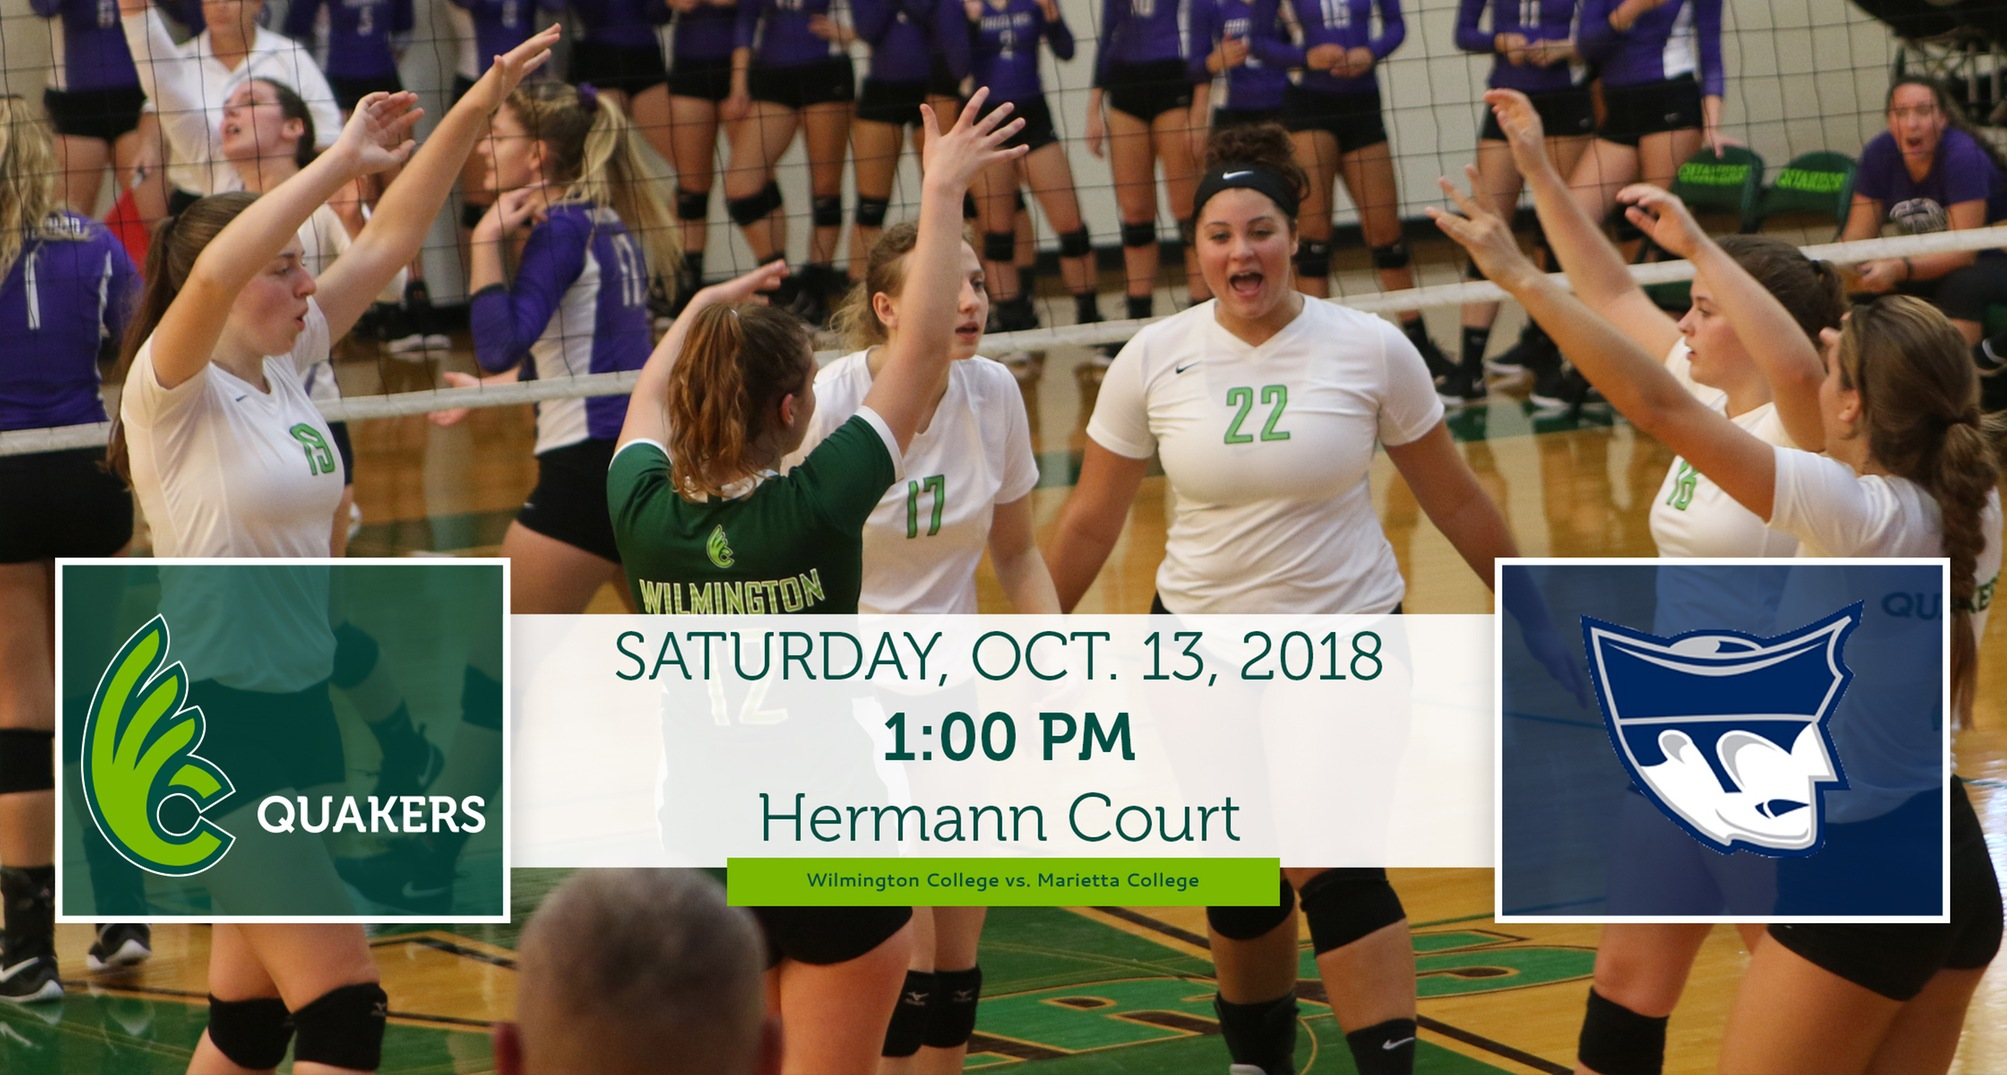 Volleyball Hosts Tri-Match Headlined by OAC Match with Marietta Saturday